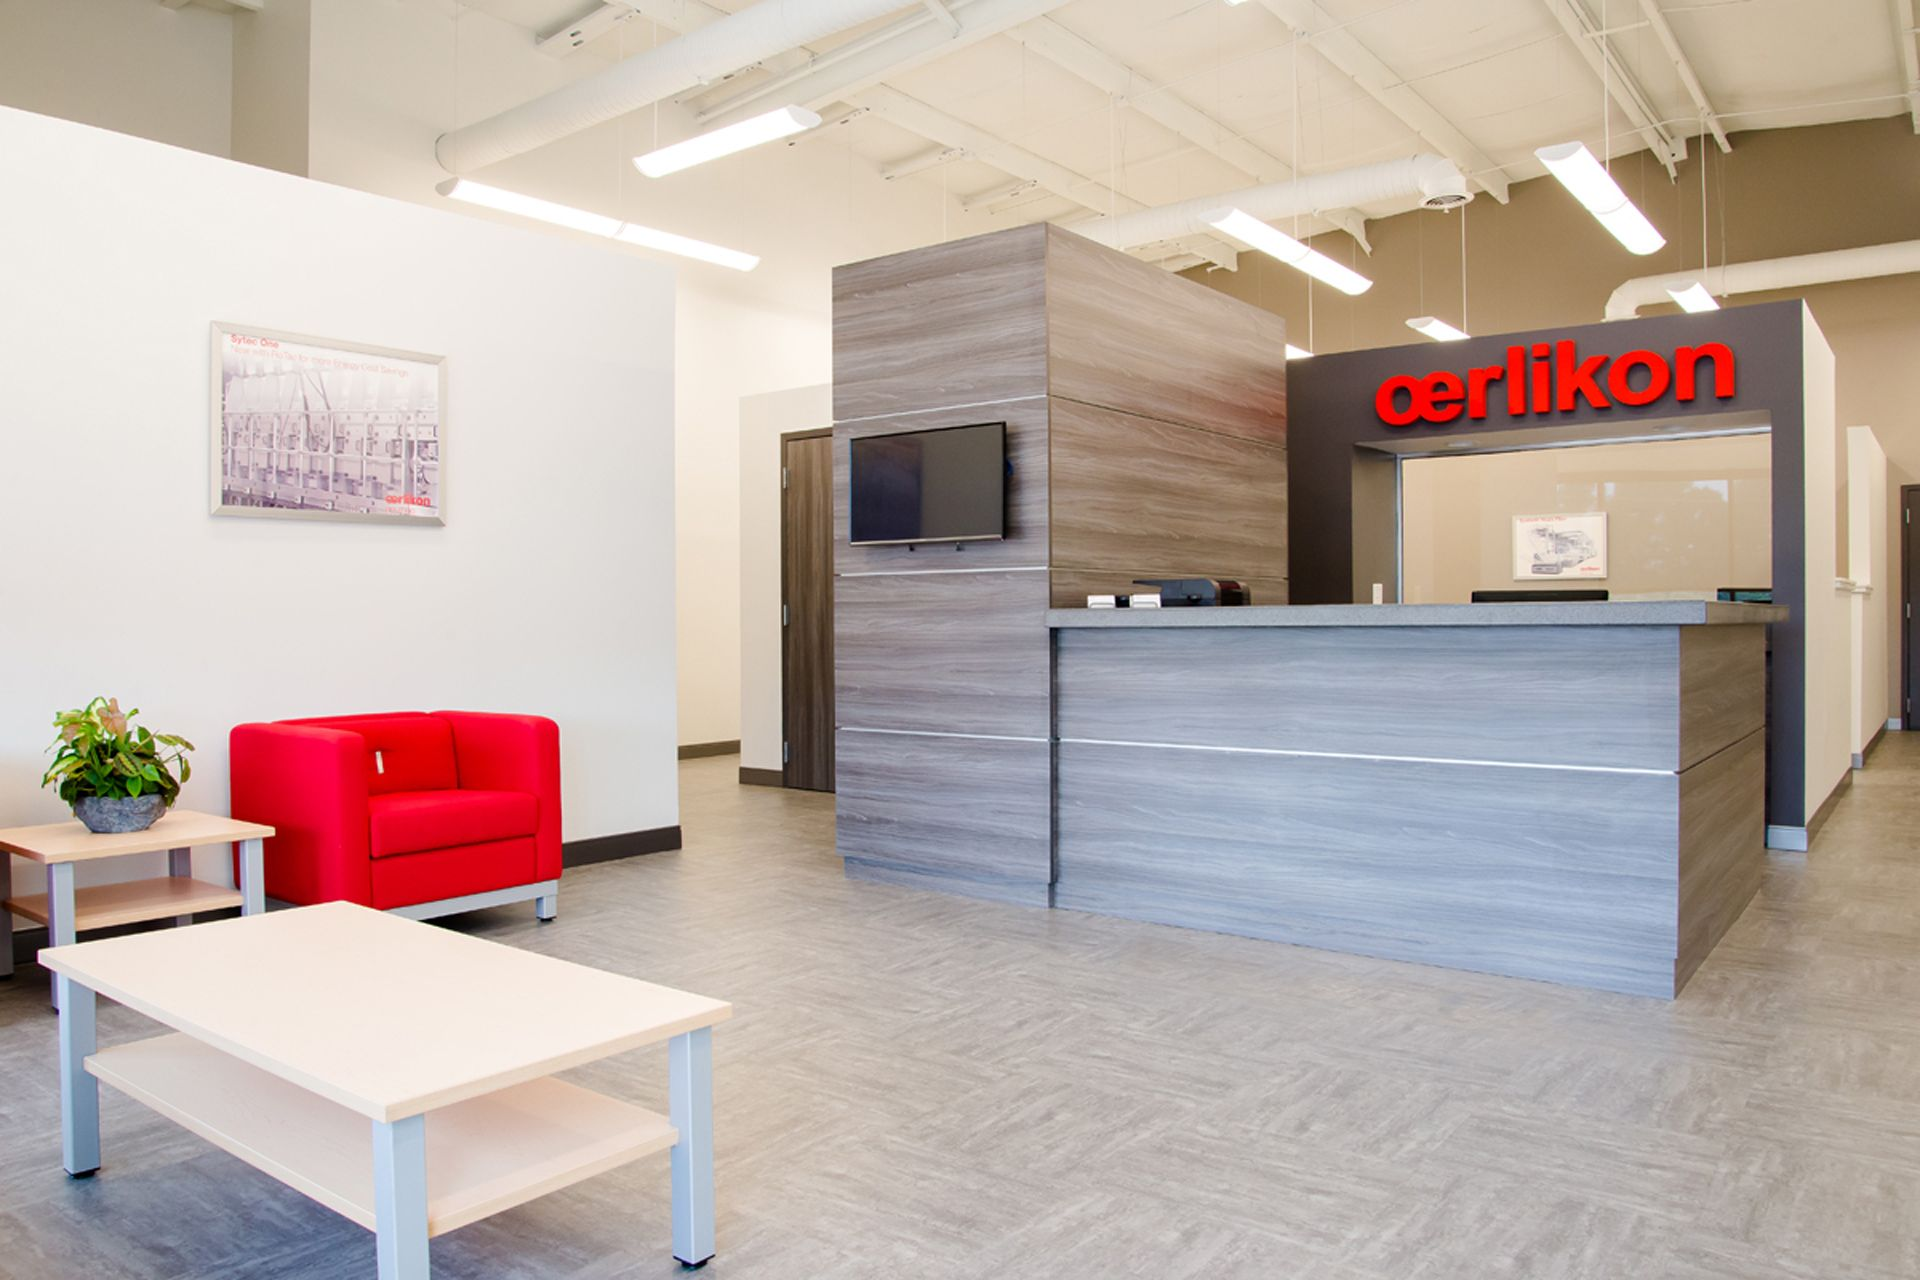 Oerlikon Offices Inside